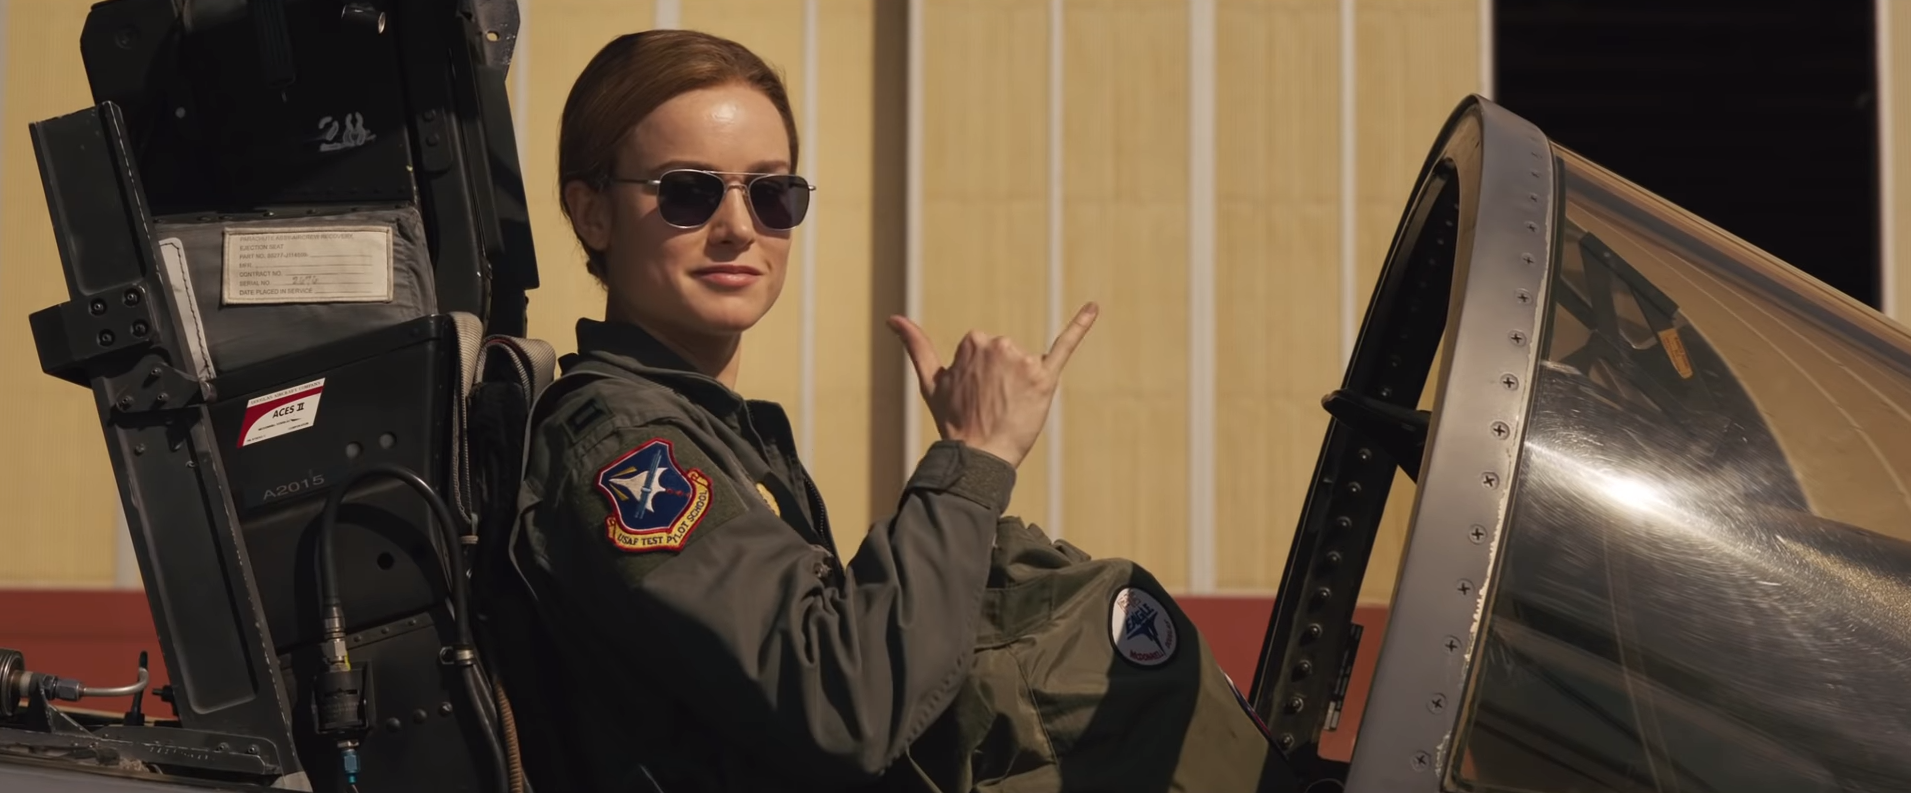 Brie Larson playing Captain Marvel in the MCU.